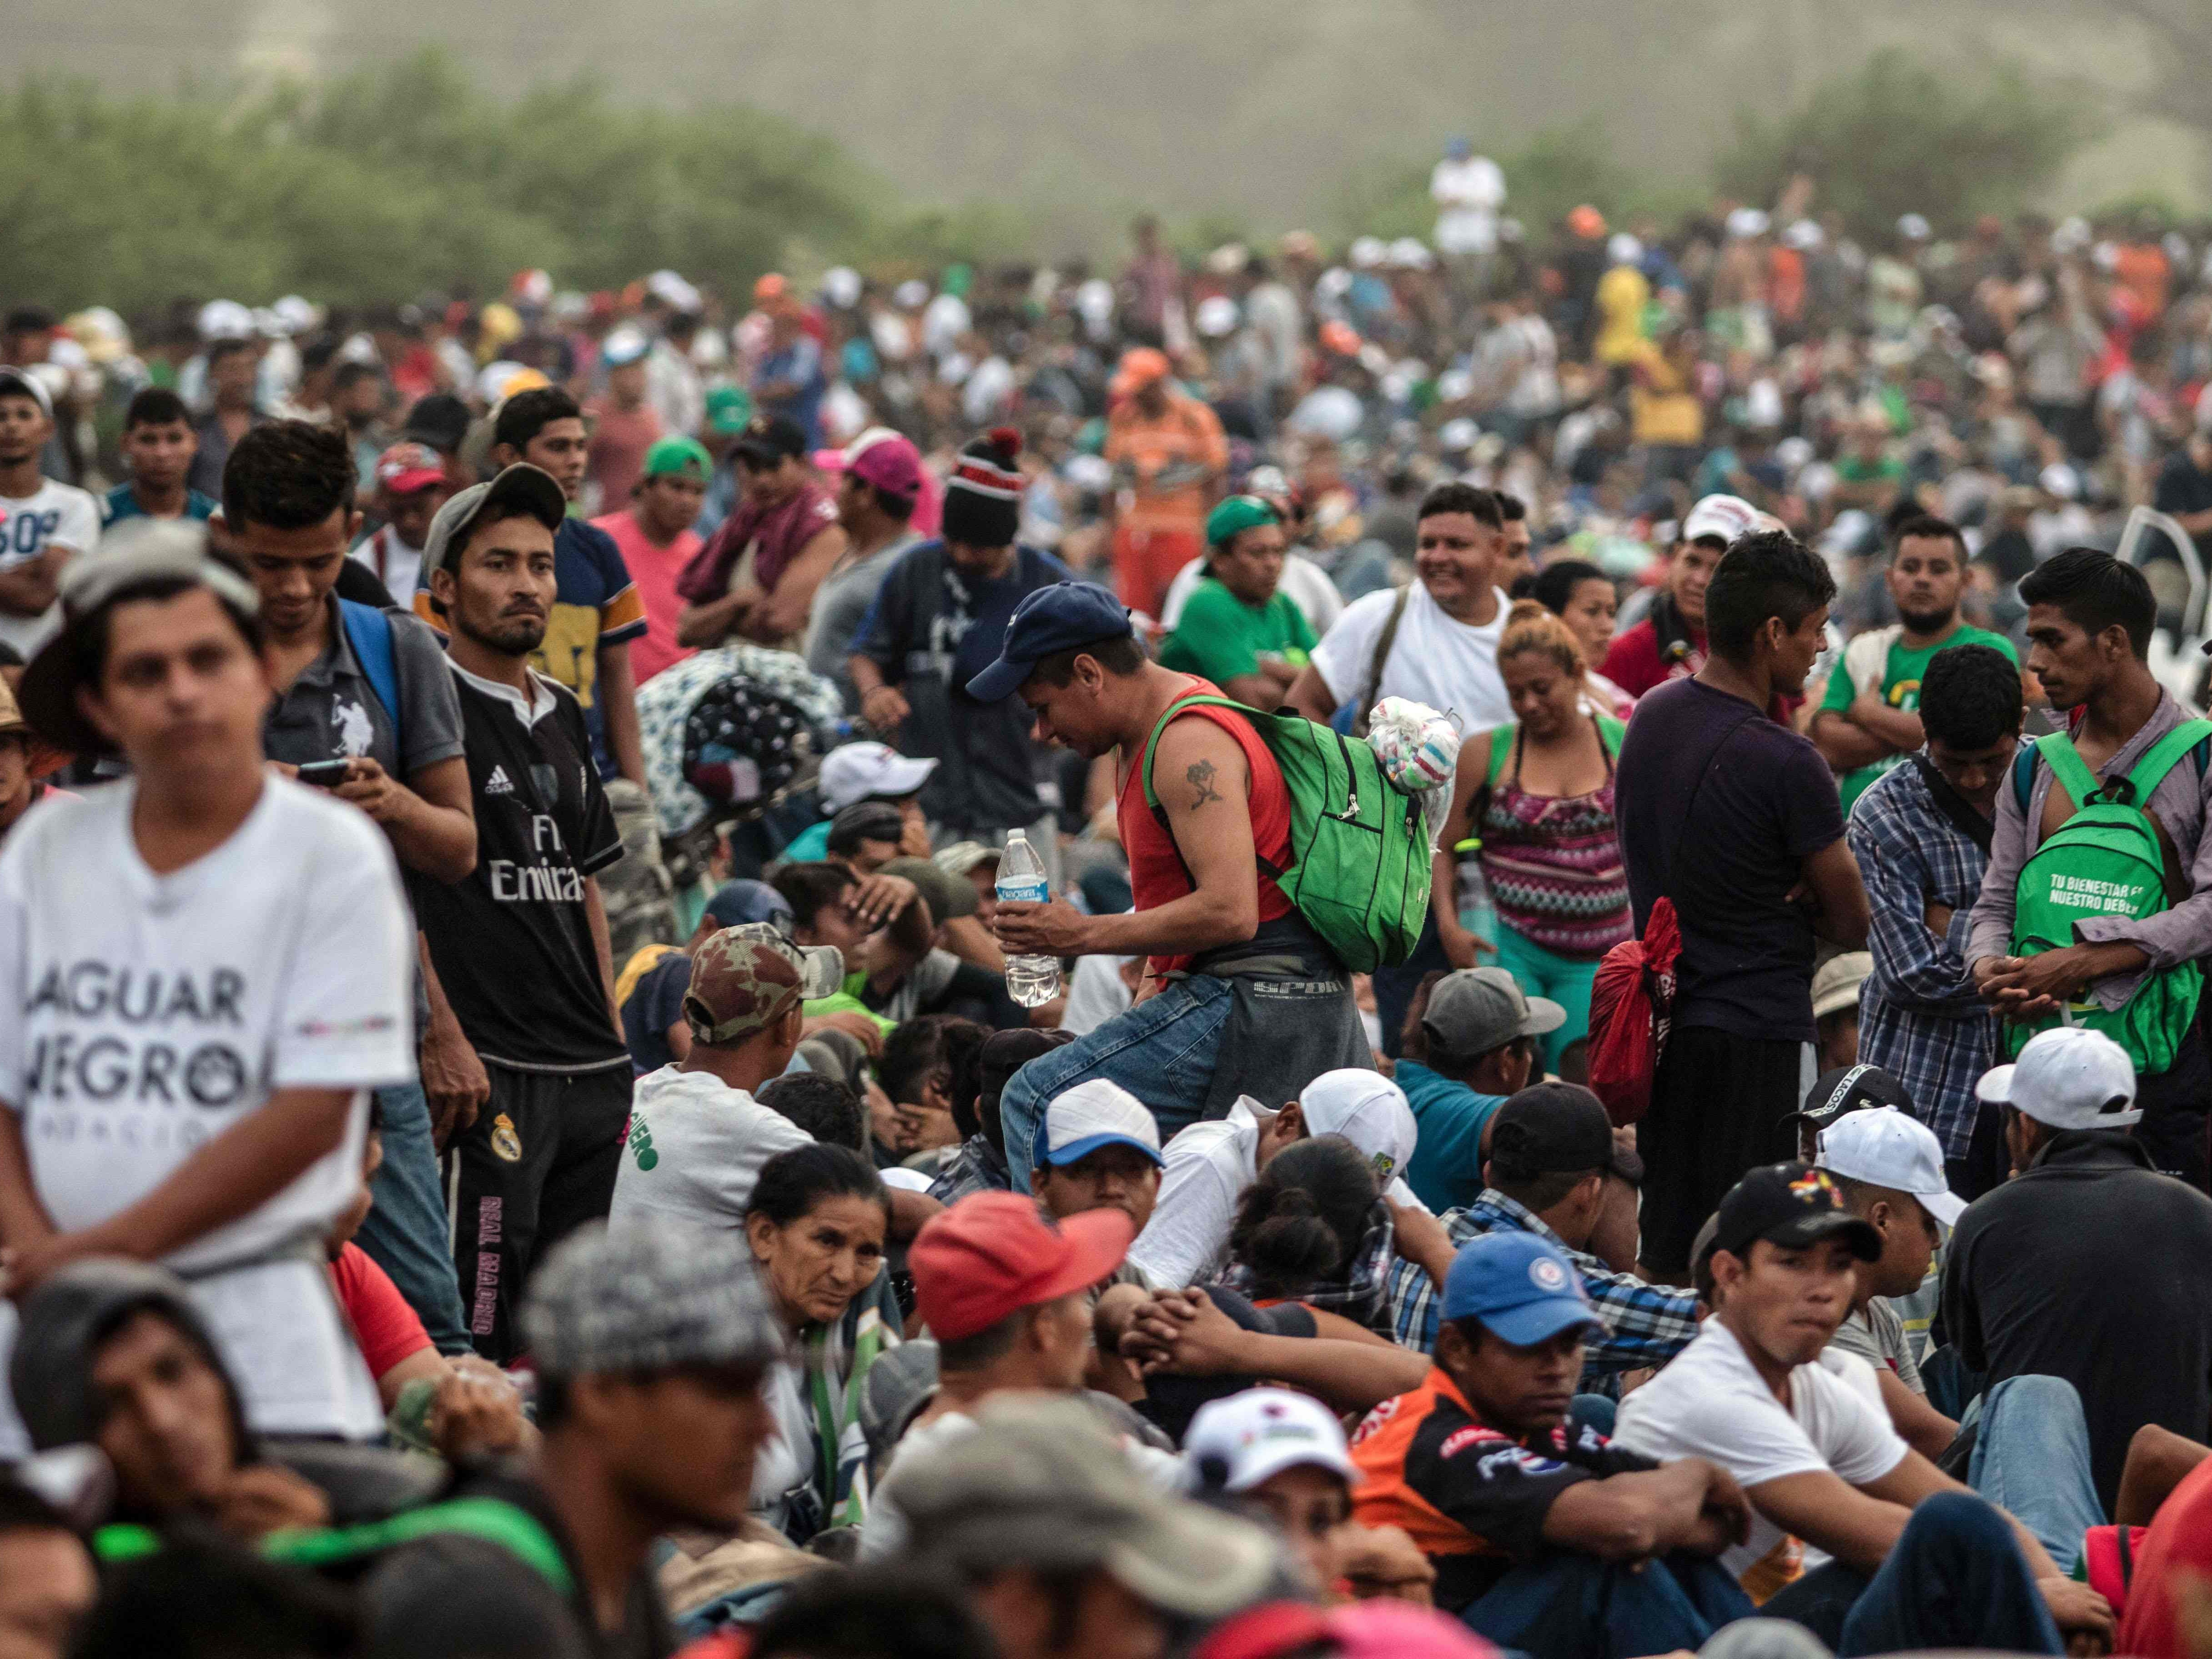 Honduran migrants taking part in a caravan heading to the U.S. wait on the road as they leave Arriaga on their way to San Pedro Tapanatepec, southern Mexico on Oct. 27, 2018.